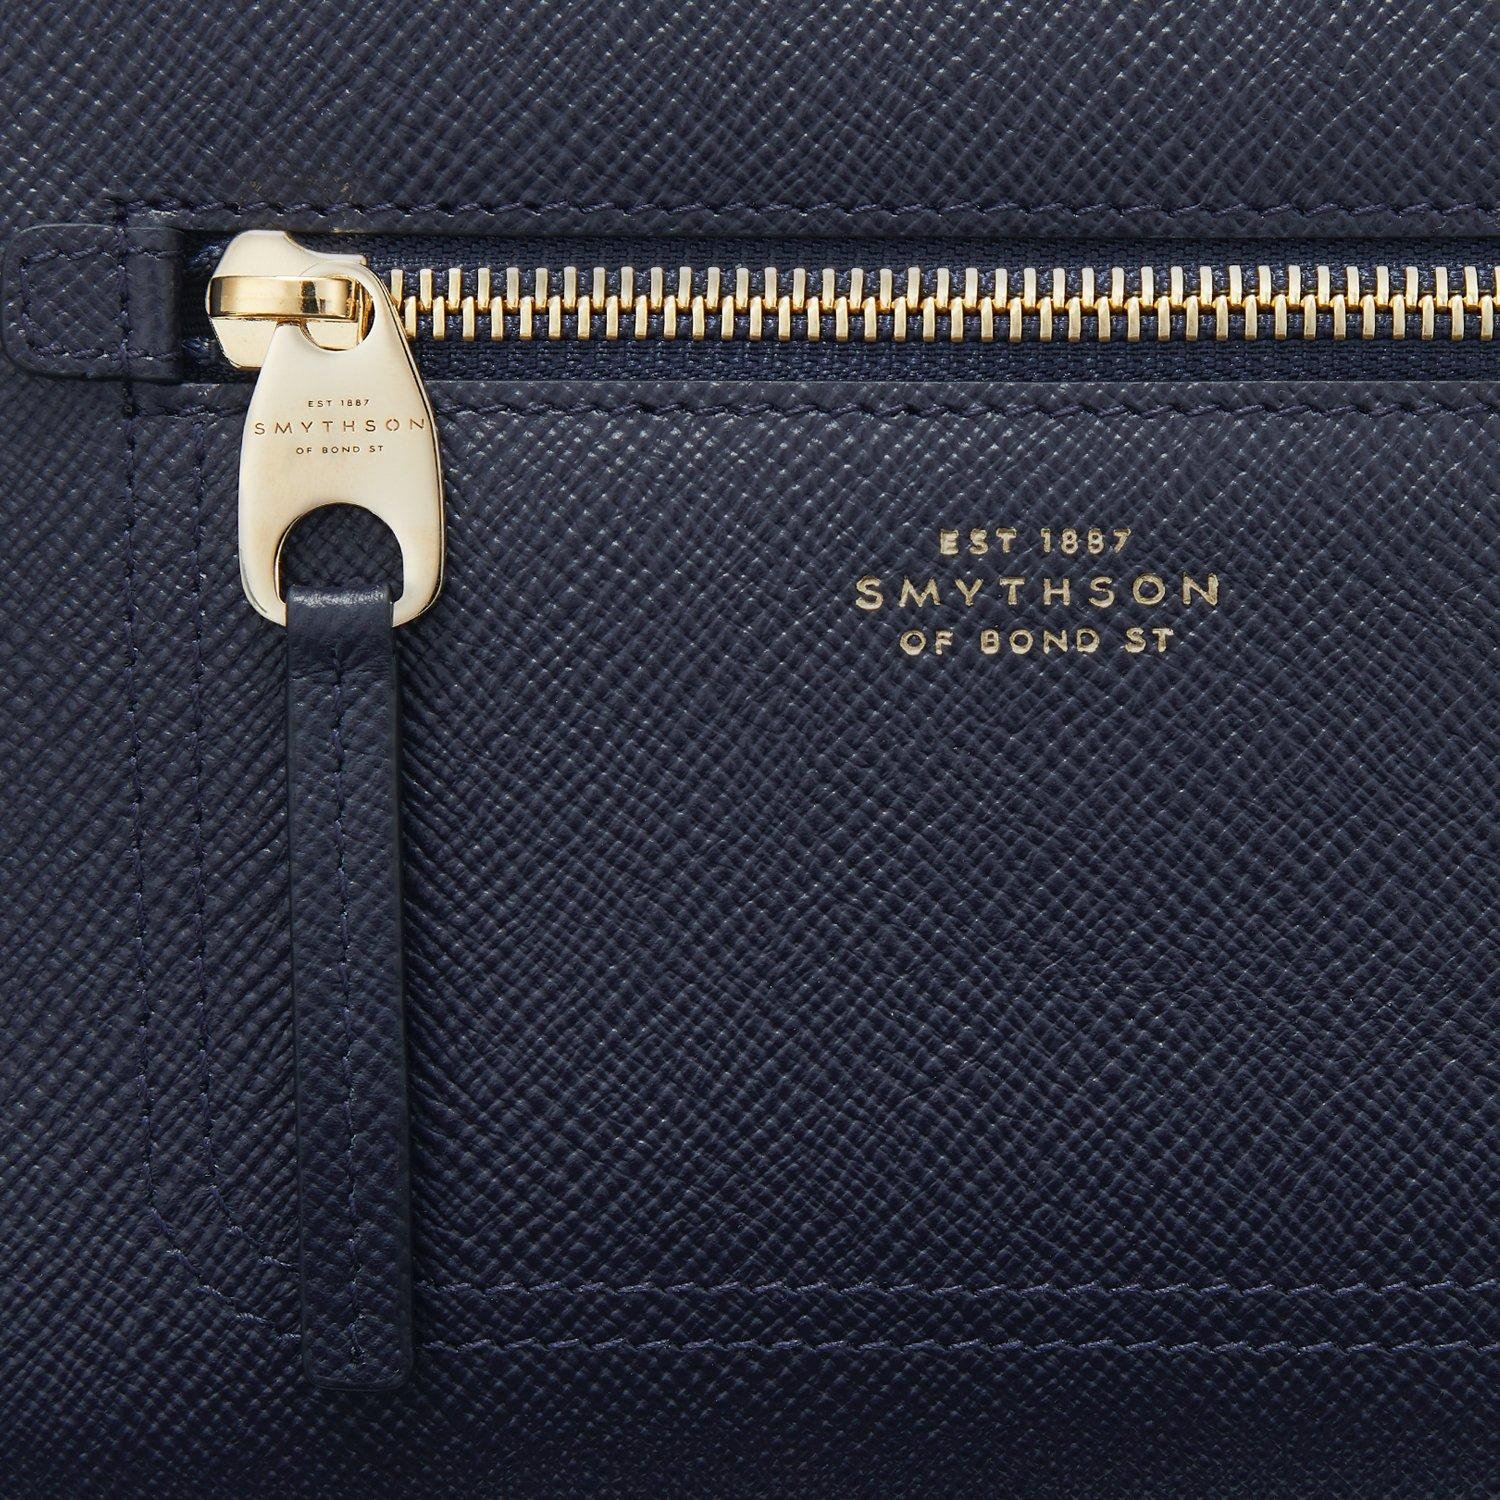 Smythson Panama Cross-grain Leather Cross-body Camera Bag in Navy (Blue)